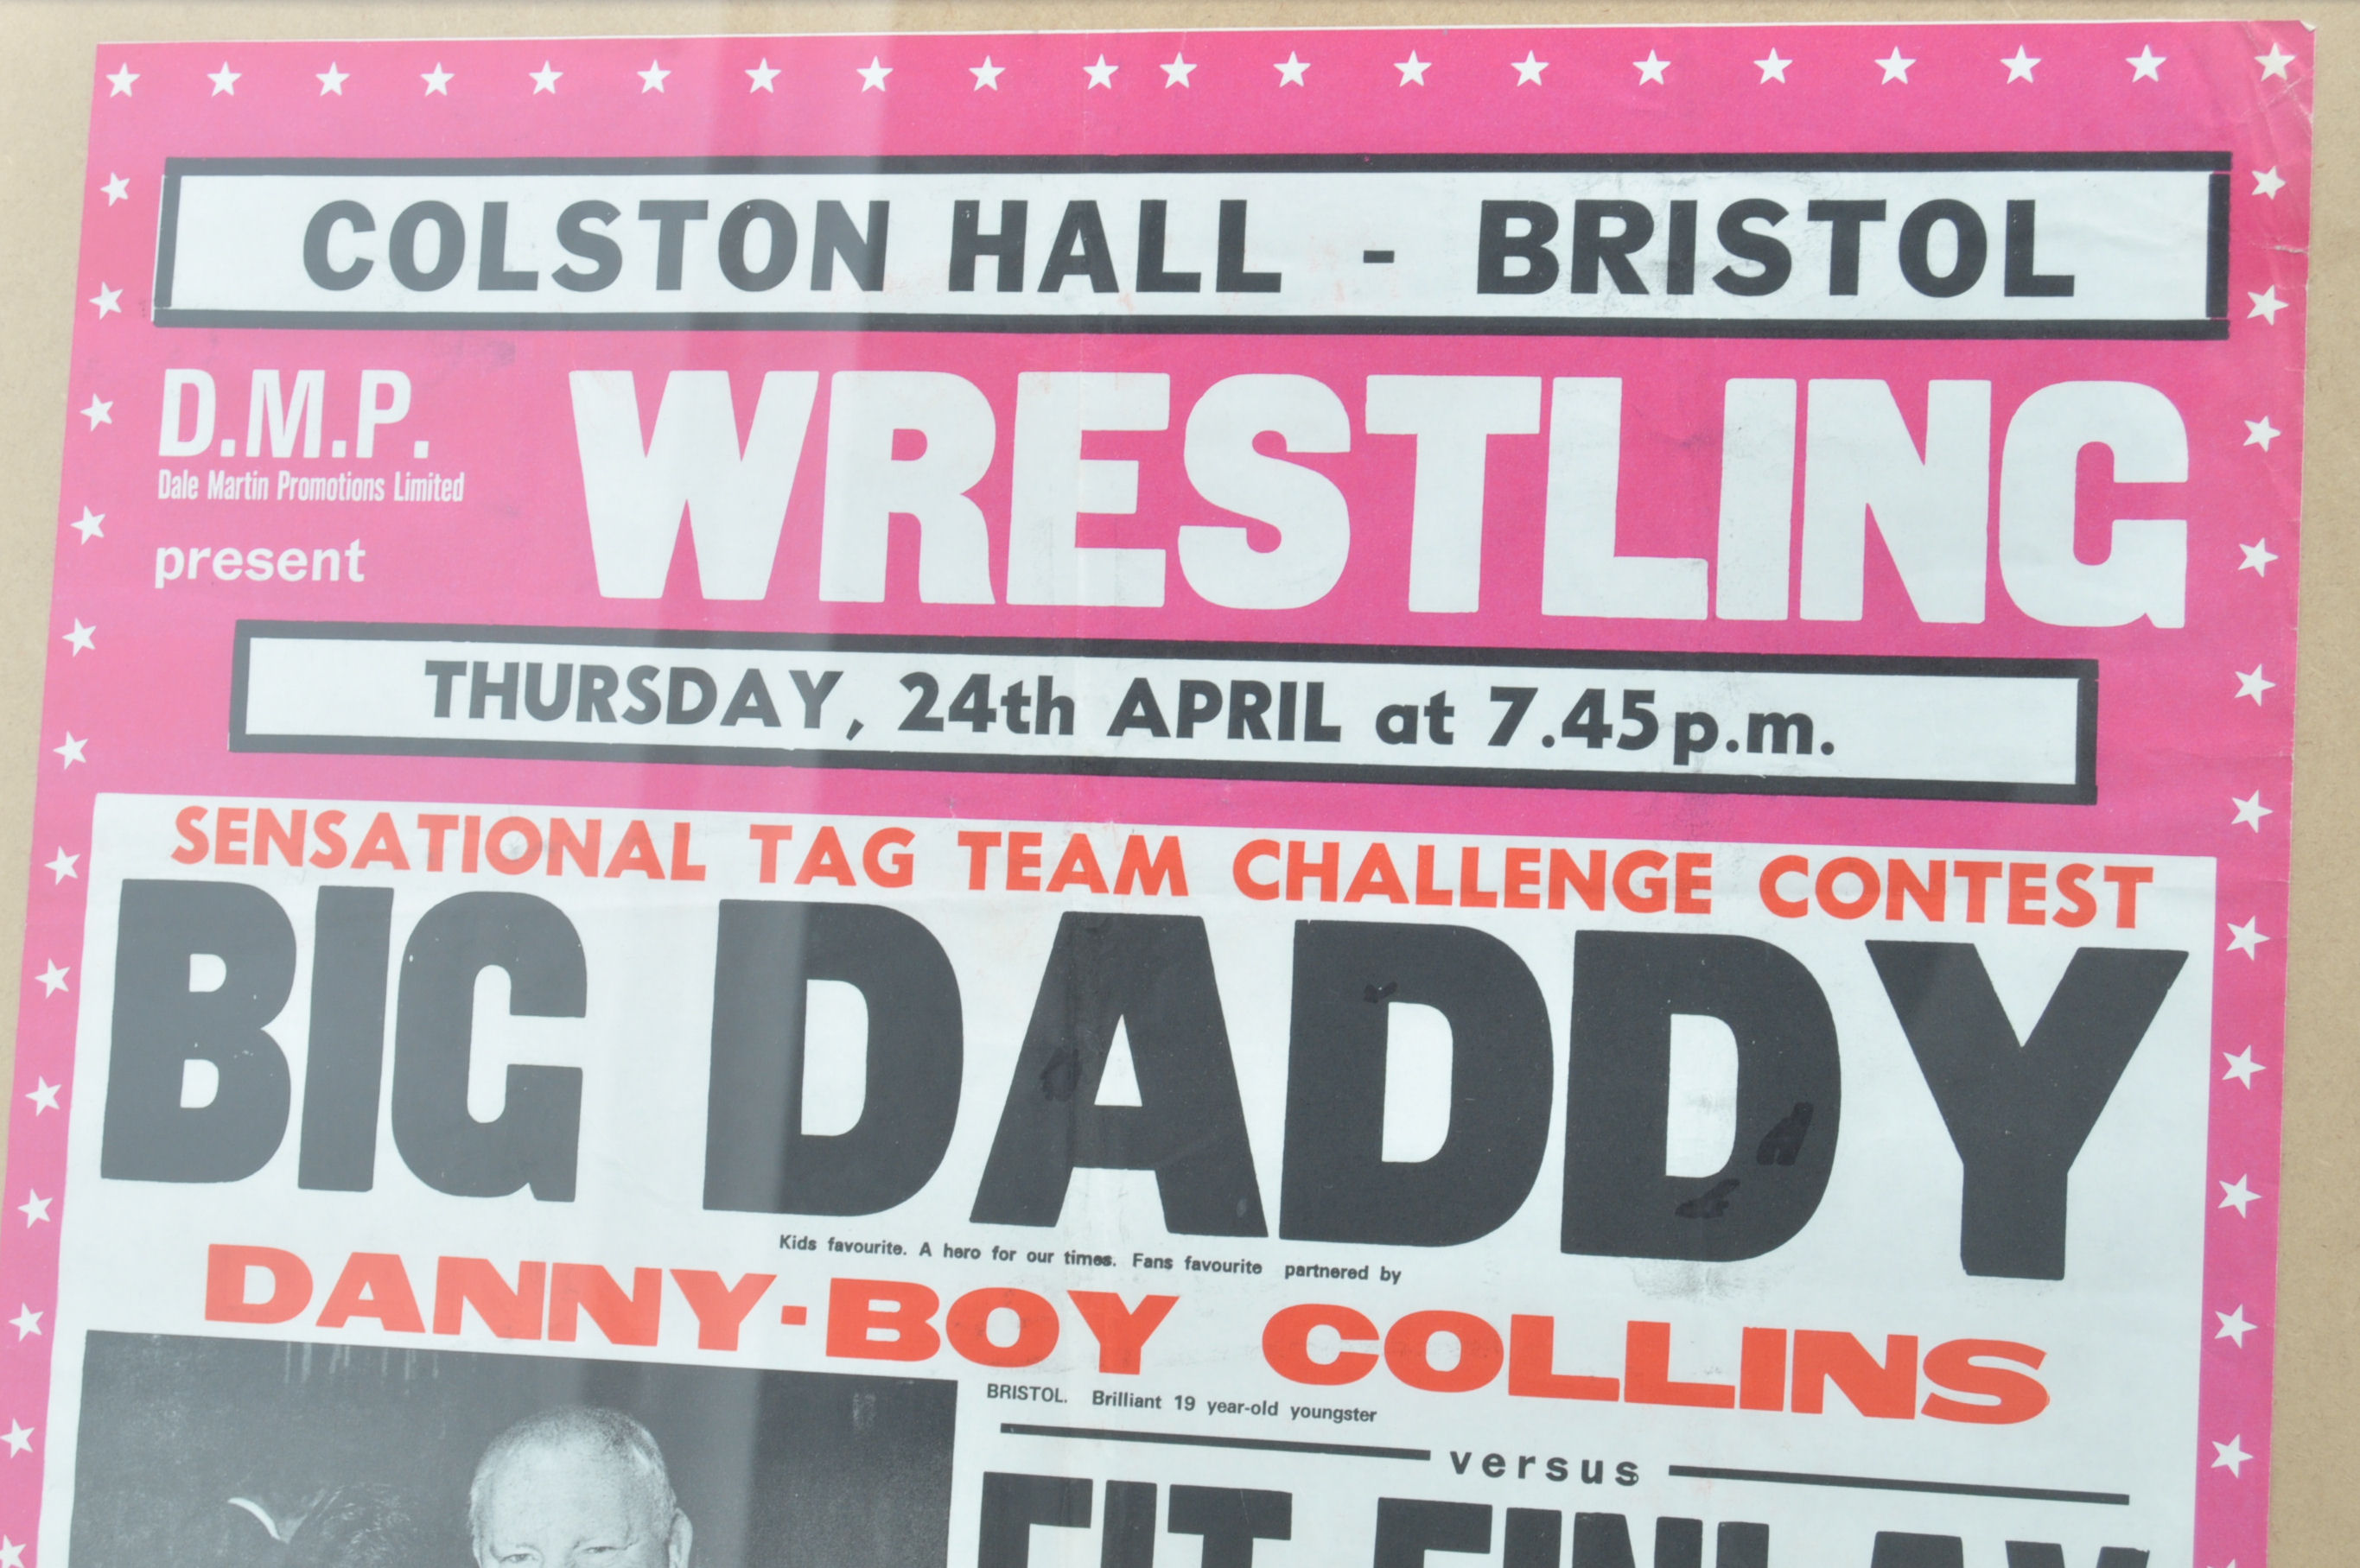 RARE VINTAGE LOCAL INTEREST COLSTON HALL WRESTLING - Image 2 of 4